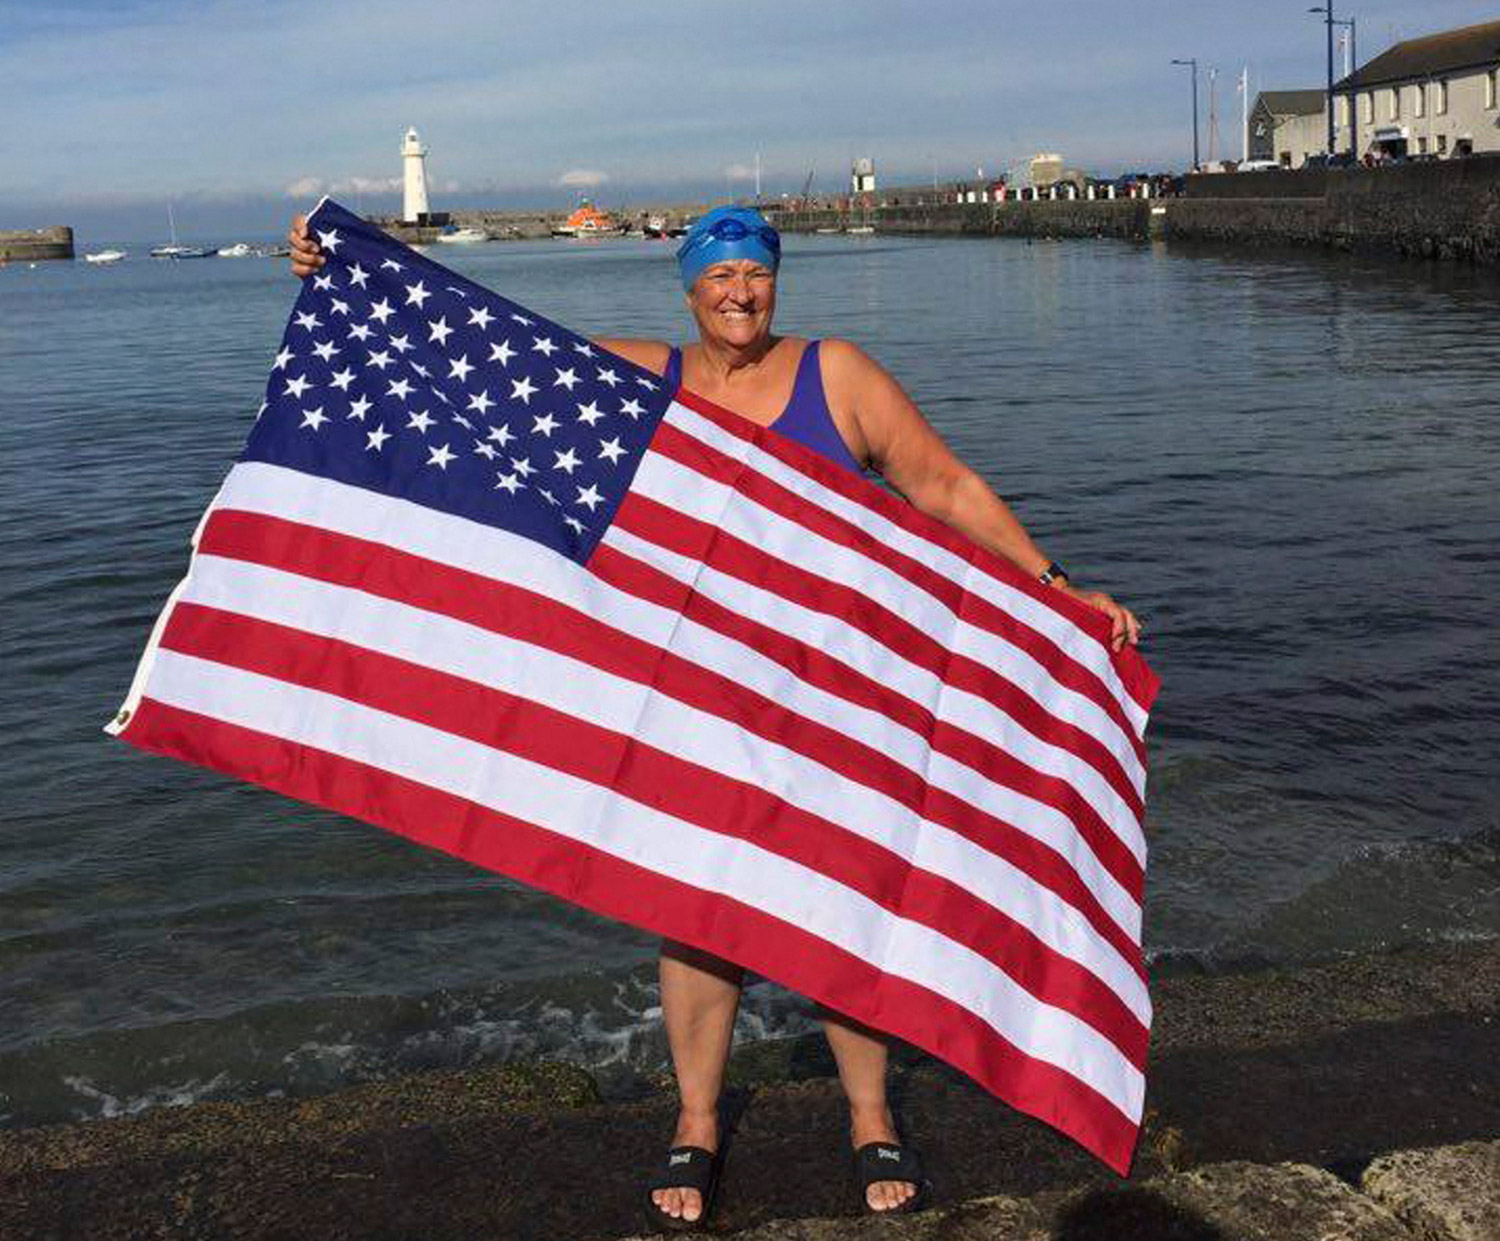 Pat Gallant-Charette holds an American flag on the shore of Donaghadee, Northern Ireland, Thursday to celebrate her crossing of the North Channel of the Irish Sea the previous day. She left from Donaghadee and swam to Scotland. Photo by Tom Charette